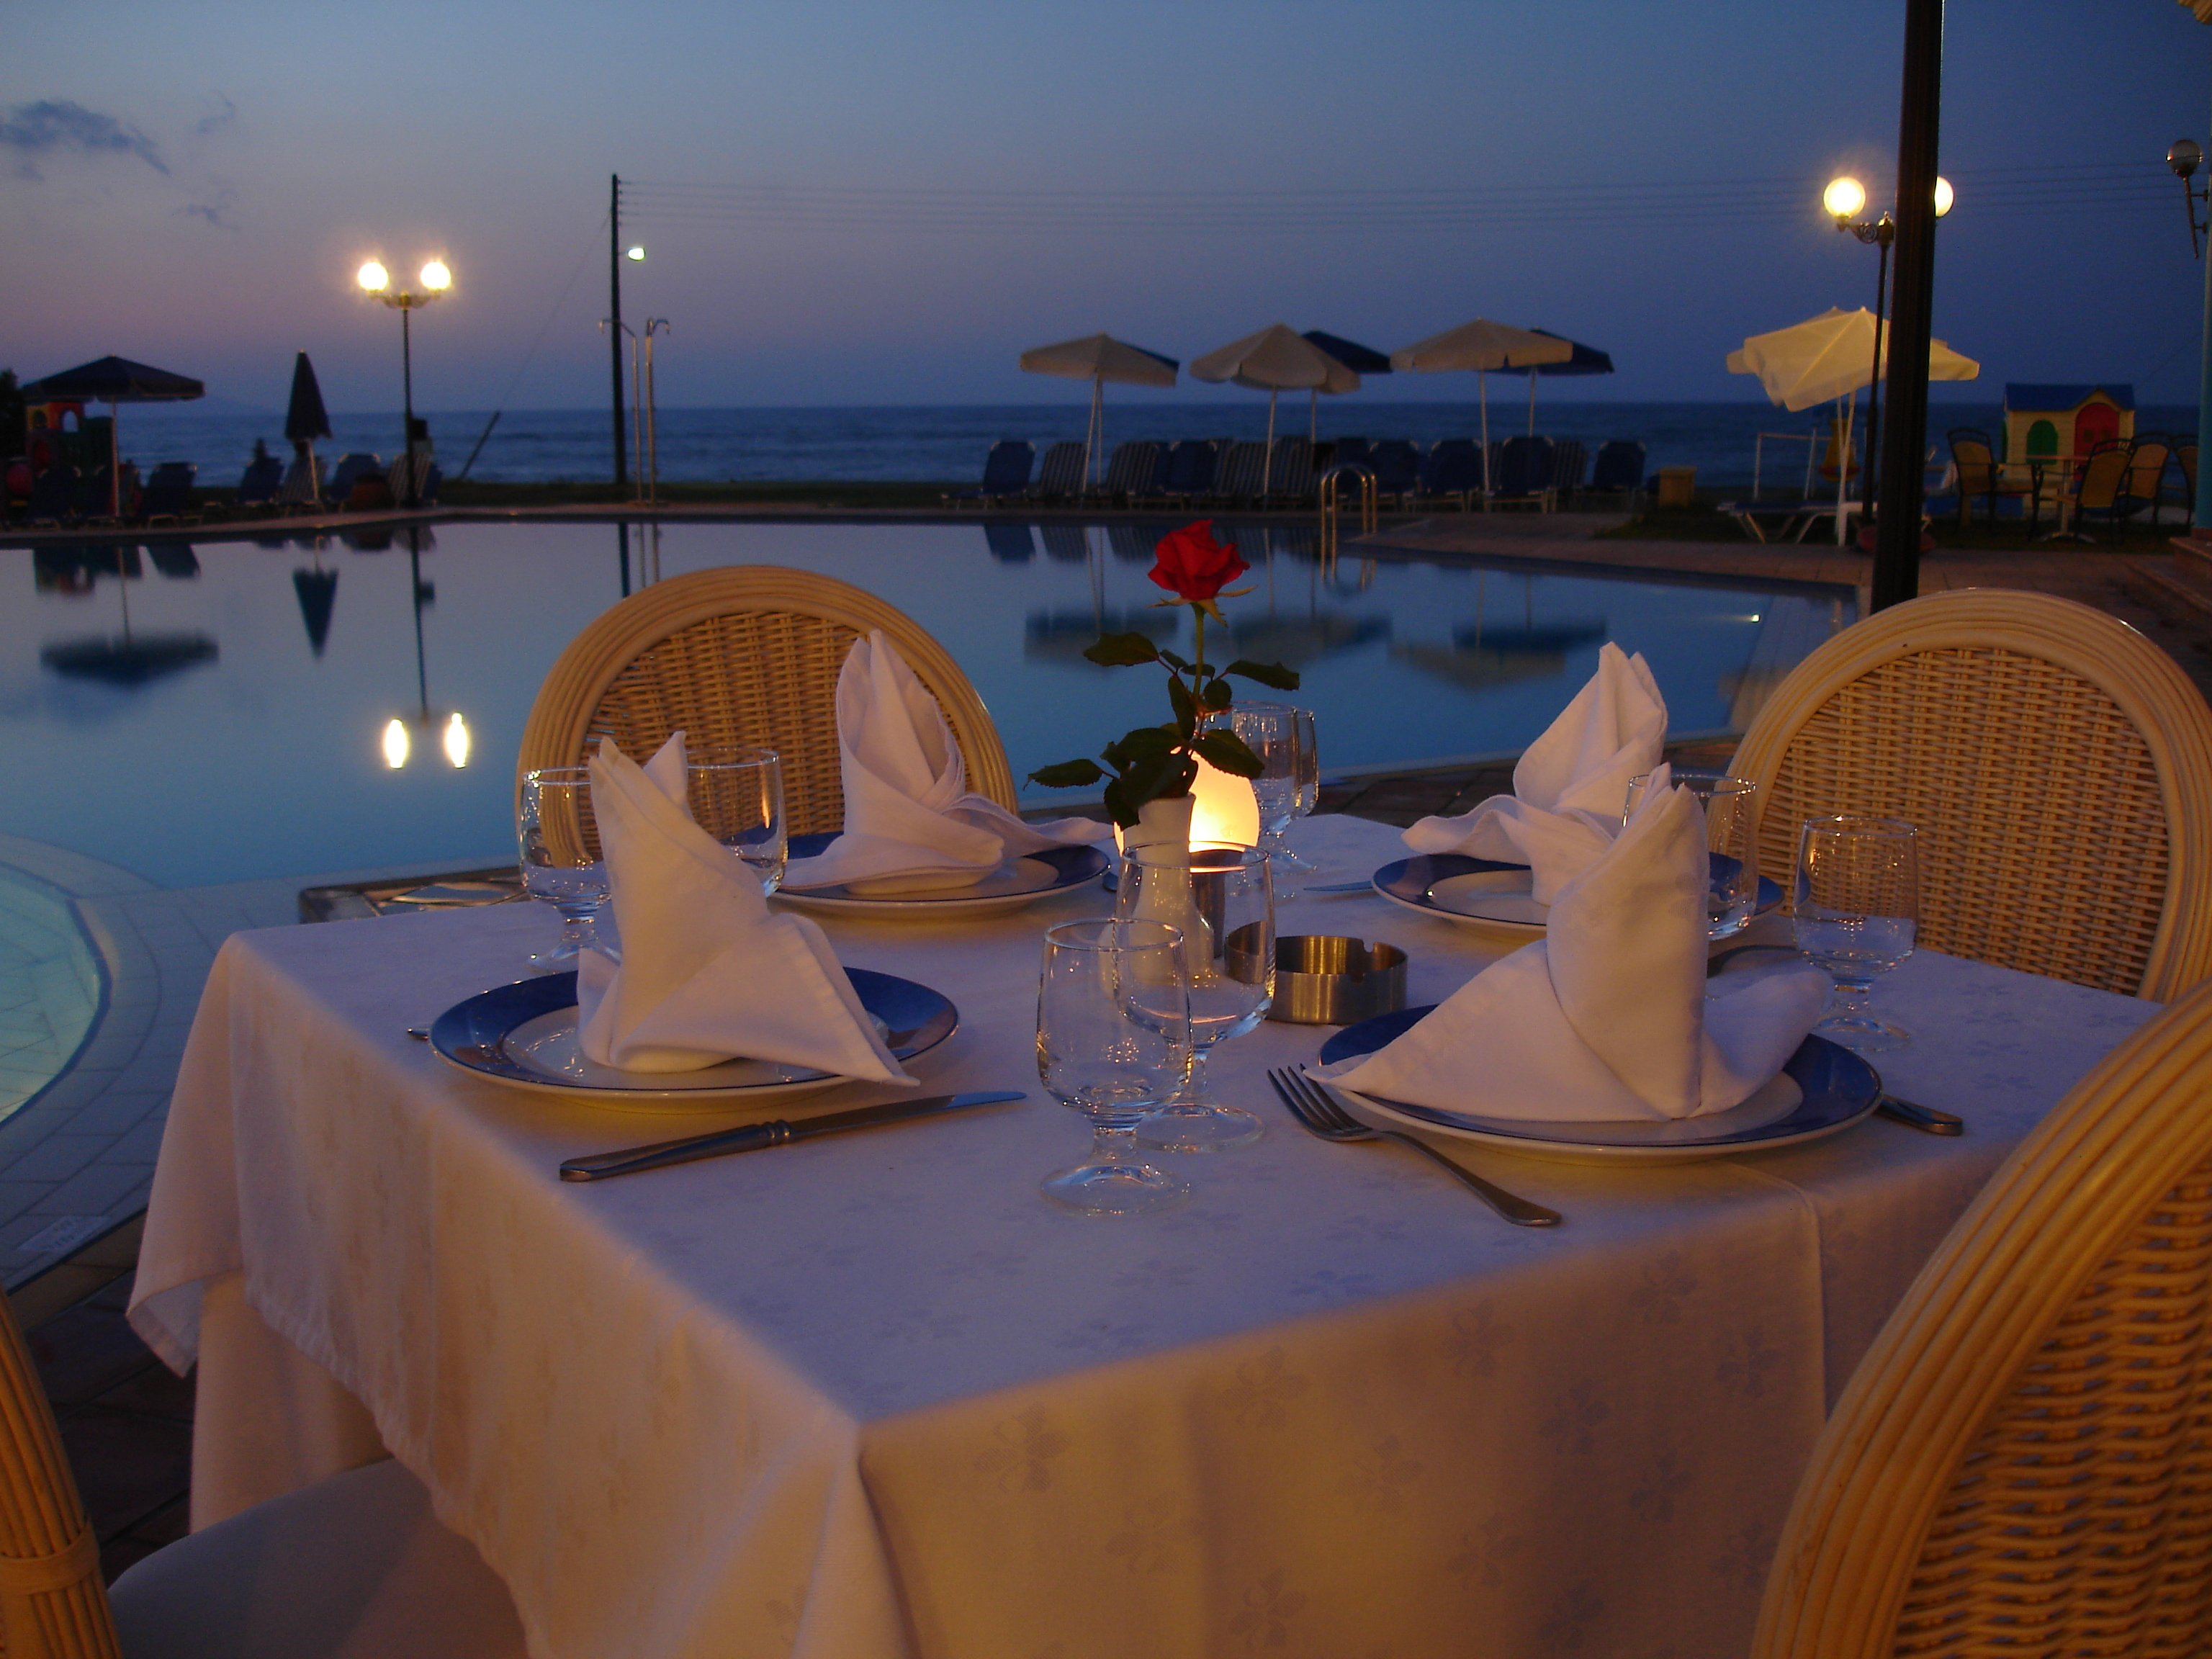 night restaurant romantic